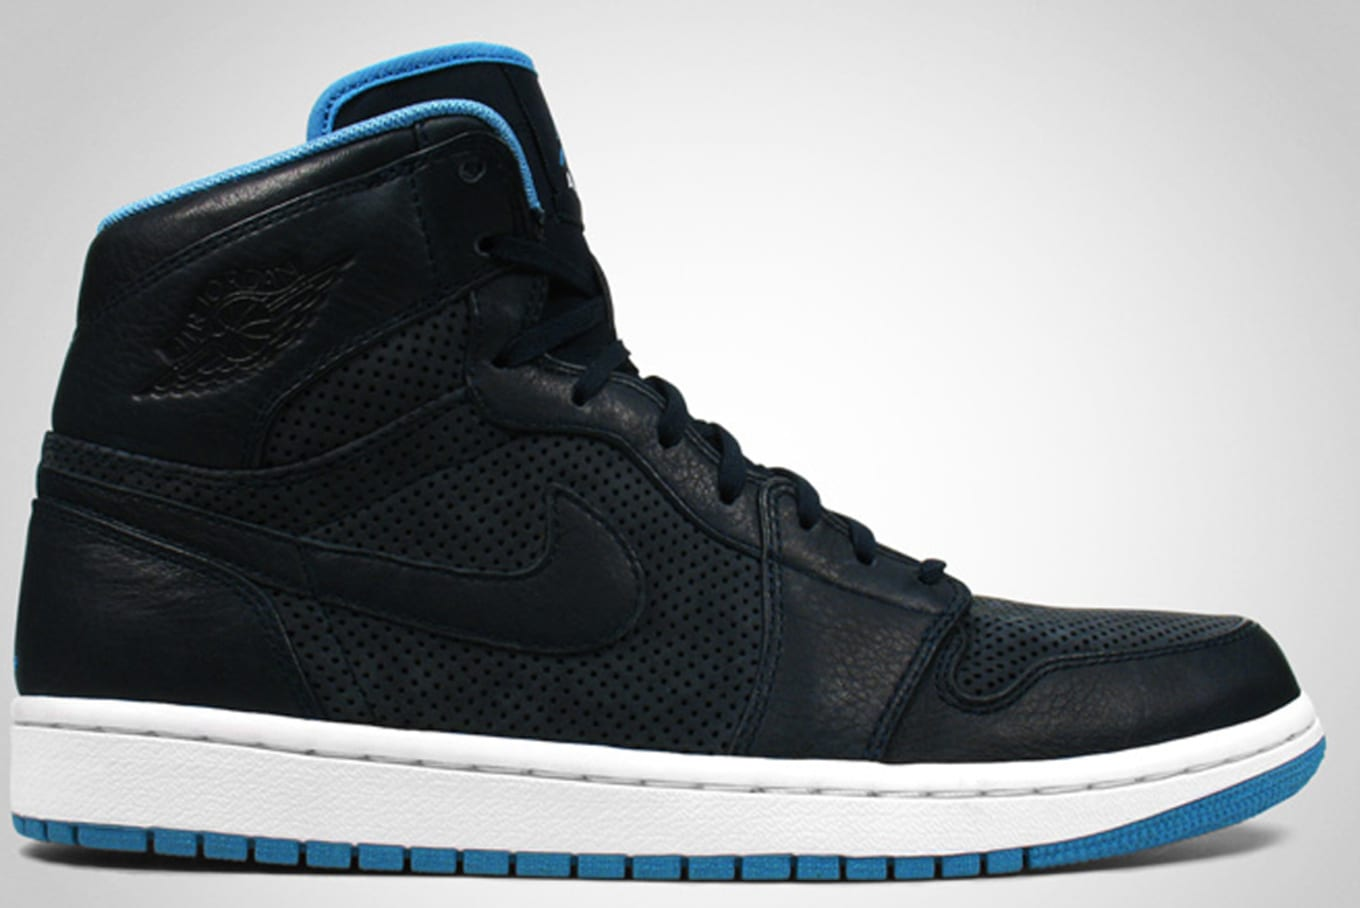 low priced d6999 e48f0 Air Jordan 1 High Retro EPM Premier Dark Obsidian Cerulean White